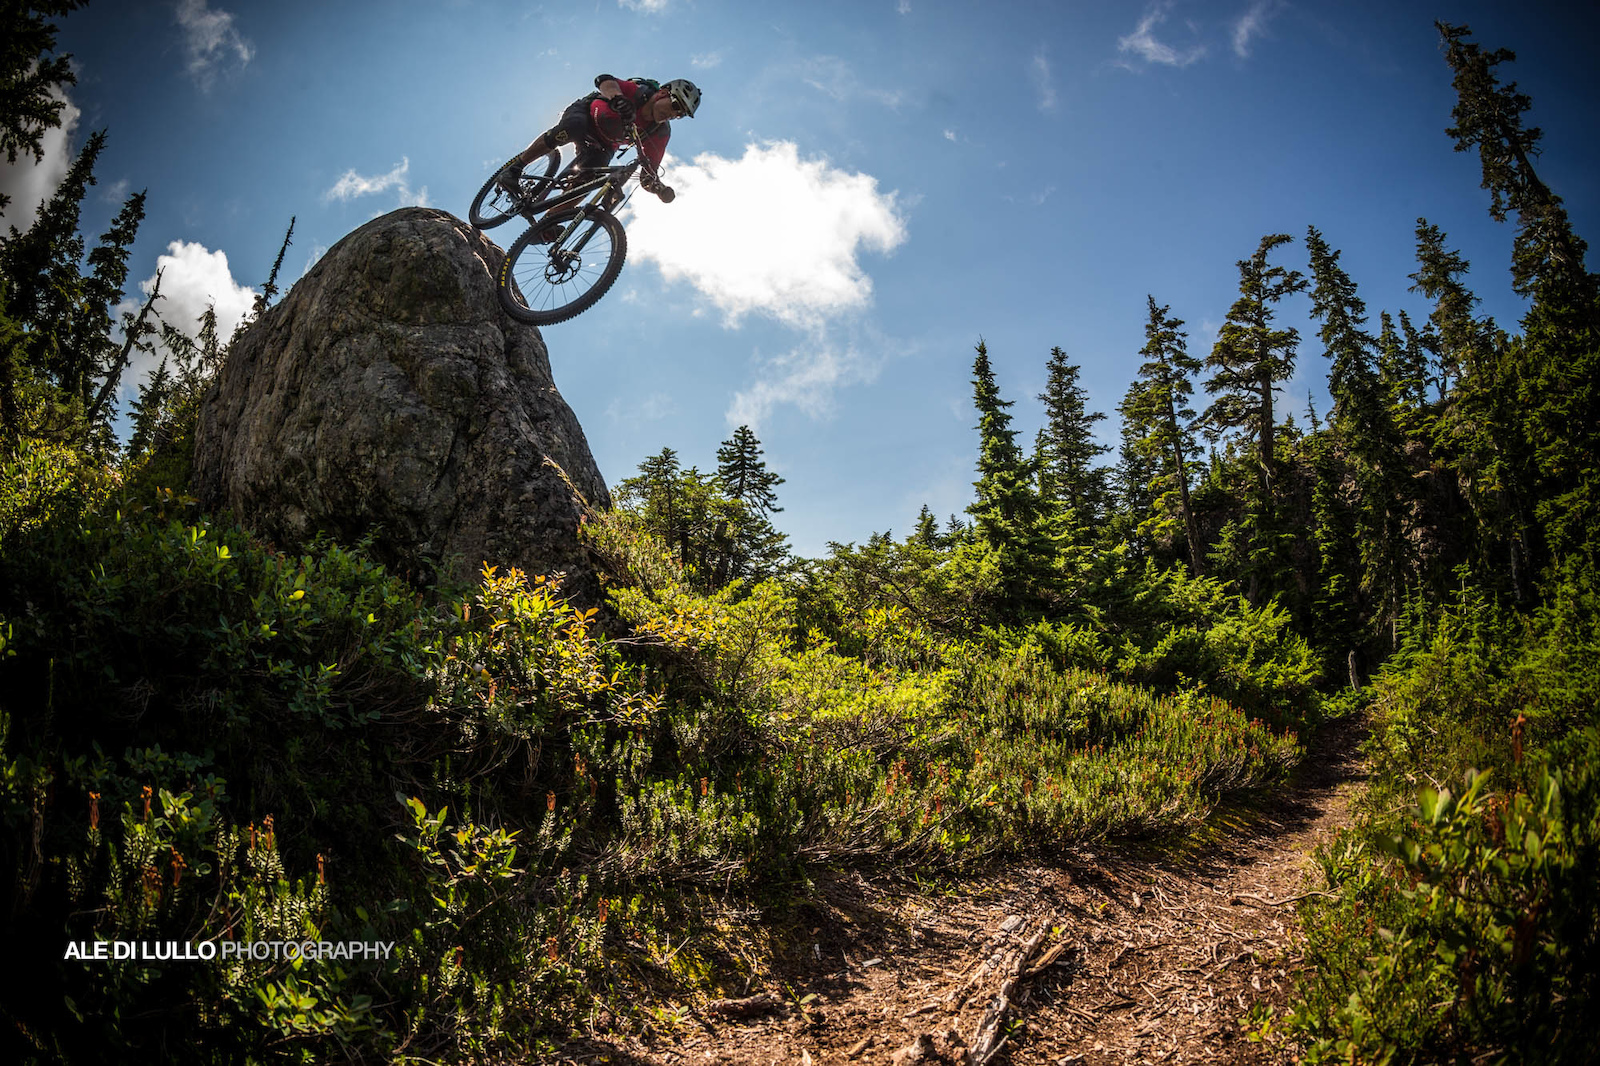 Tippie s nose for finding steep ride-able lines is second to none